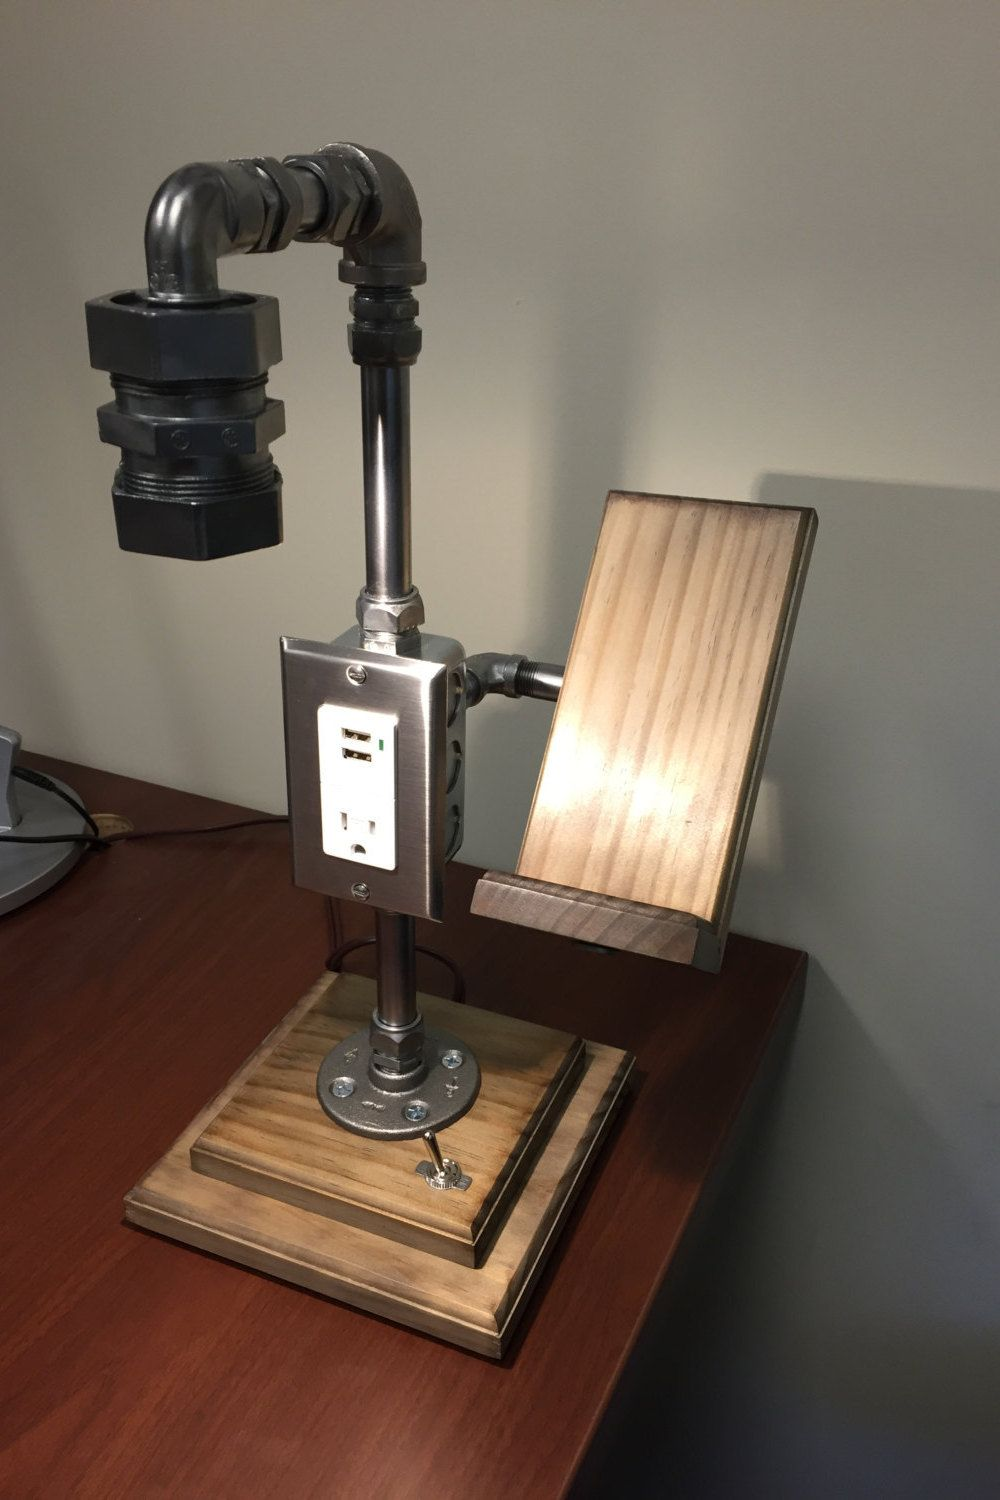 the hammered boss desk or table lamp with usb by bosslamps the hammered boss desk or table lamp with usb by bosslamps 170 00 cool ideas pinterest boss and desks